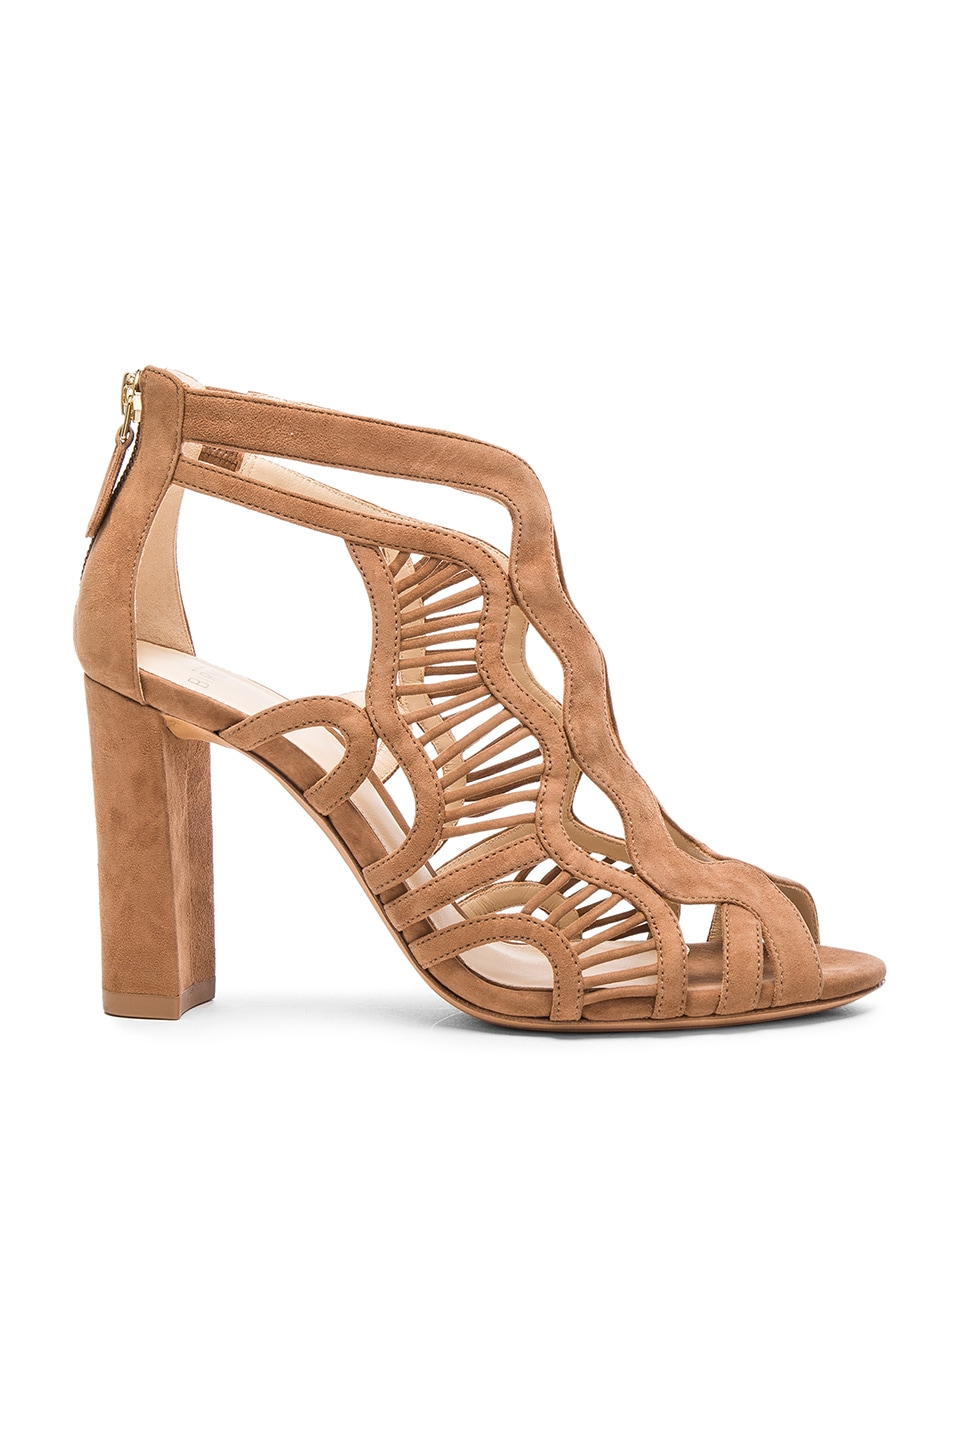 Image 1 of Alexandre Birman Suede Georgia Heels in Beige